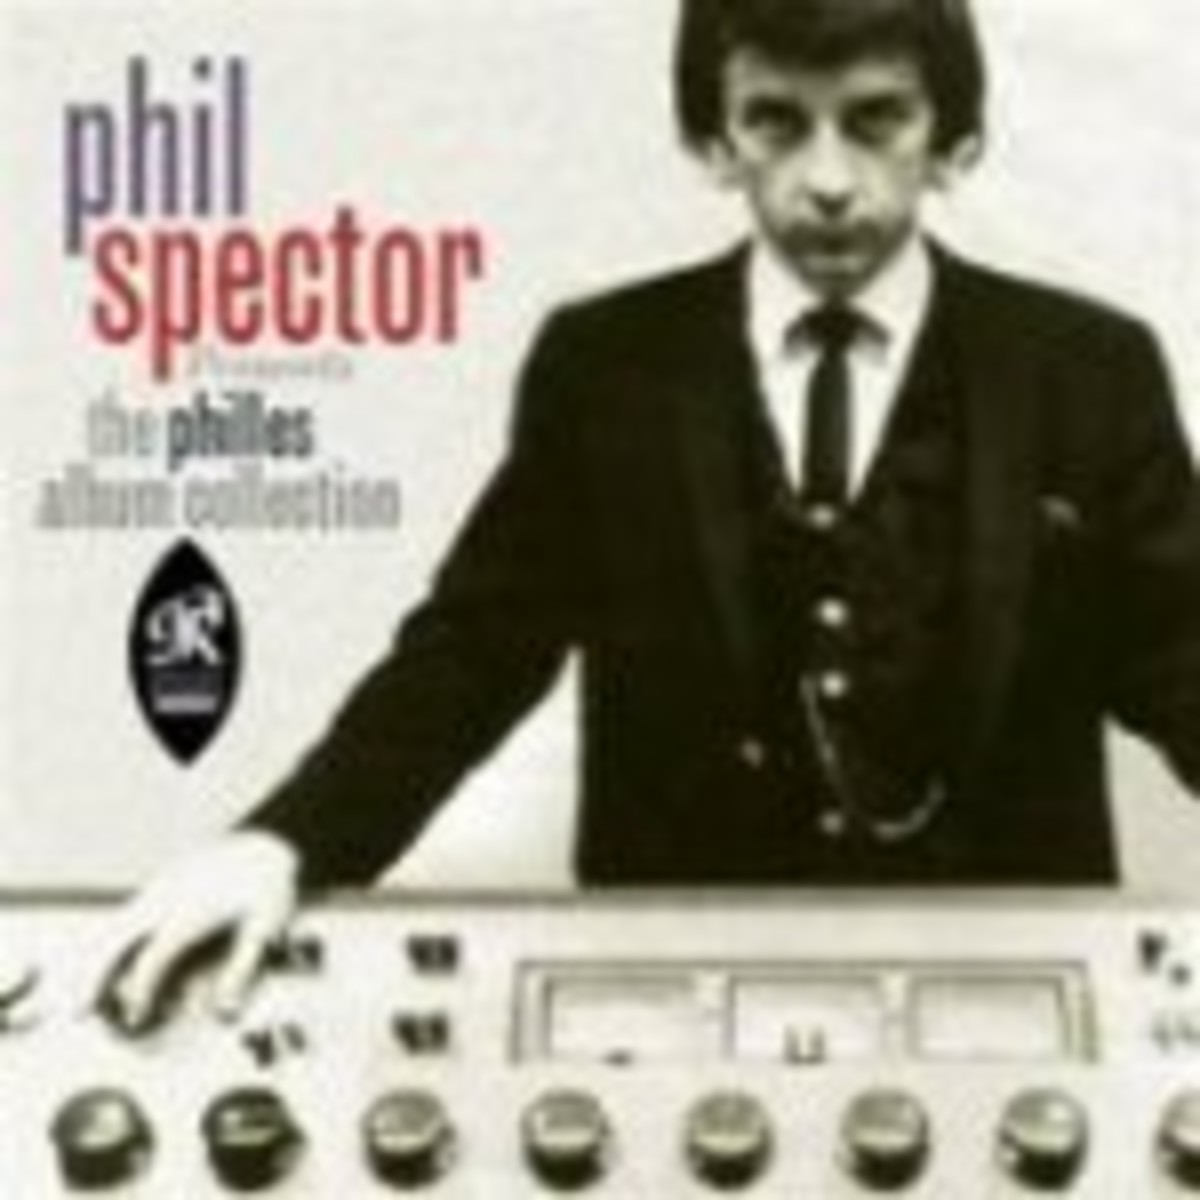 Philles Records boxed set